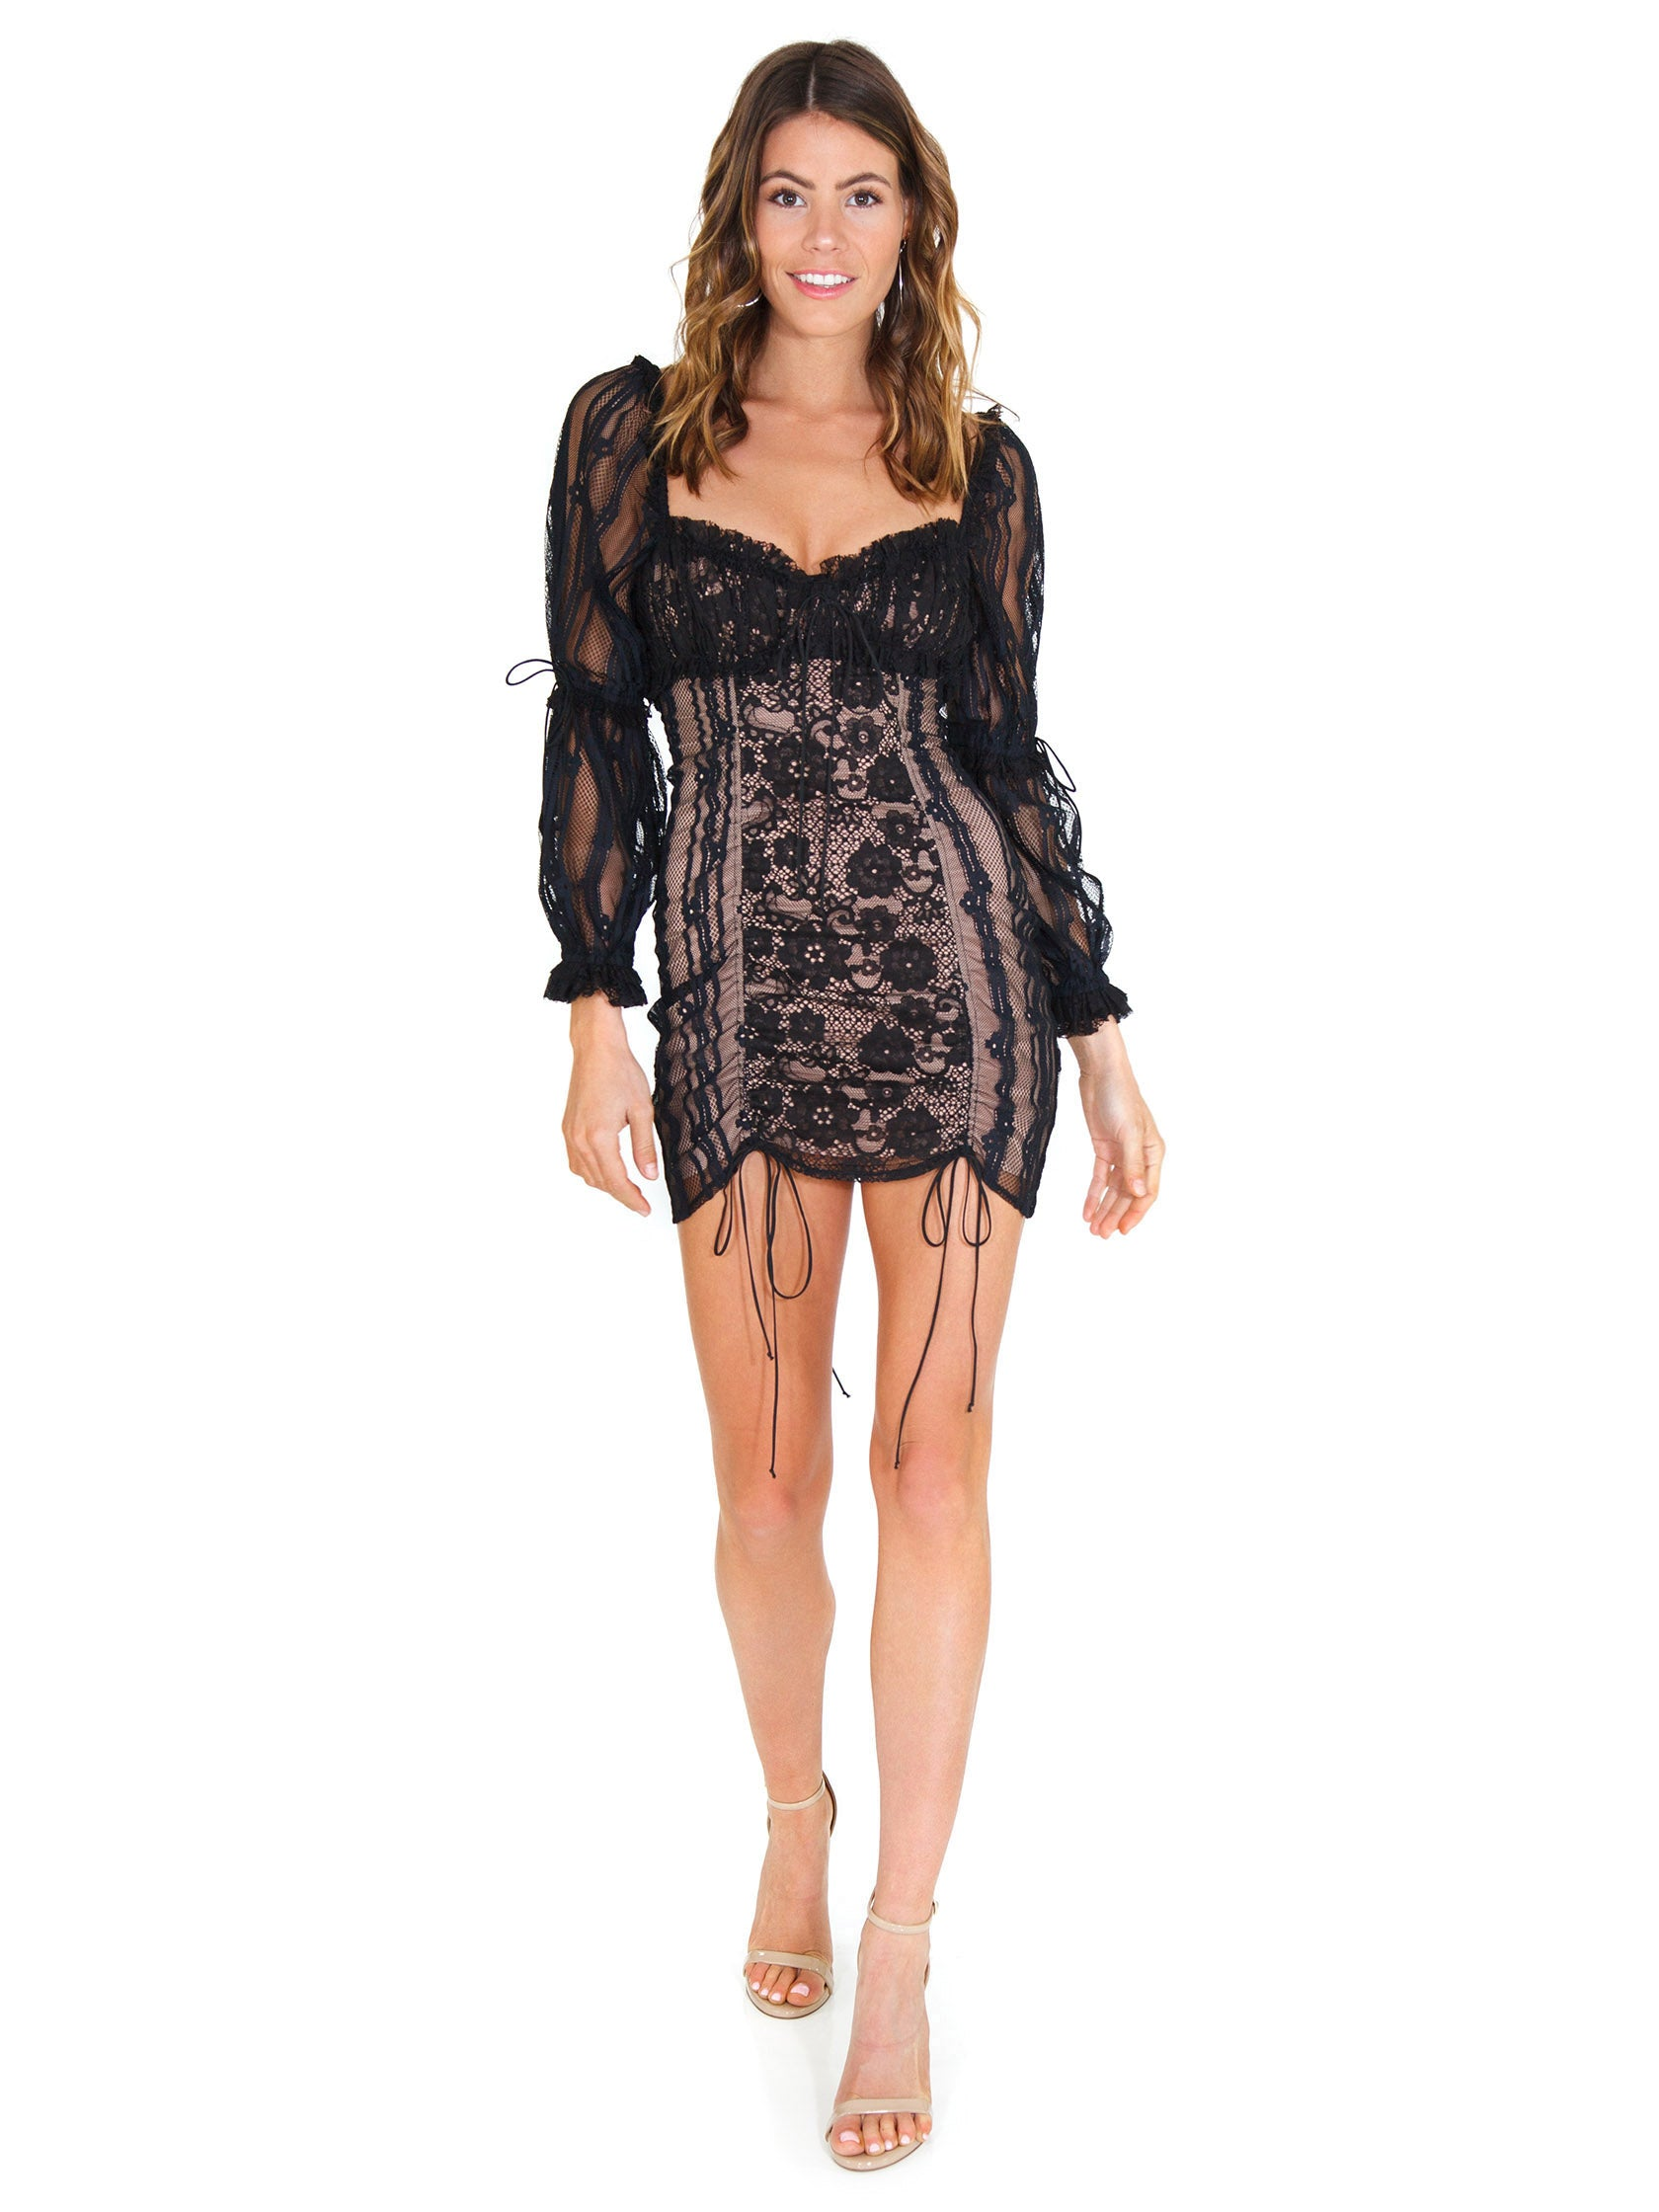 96a5f281c3fe Girl outfit in a dress rental from For Love & Lemons called Monroe Mini  Dress